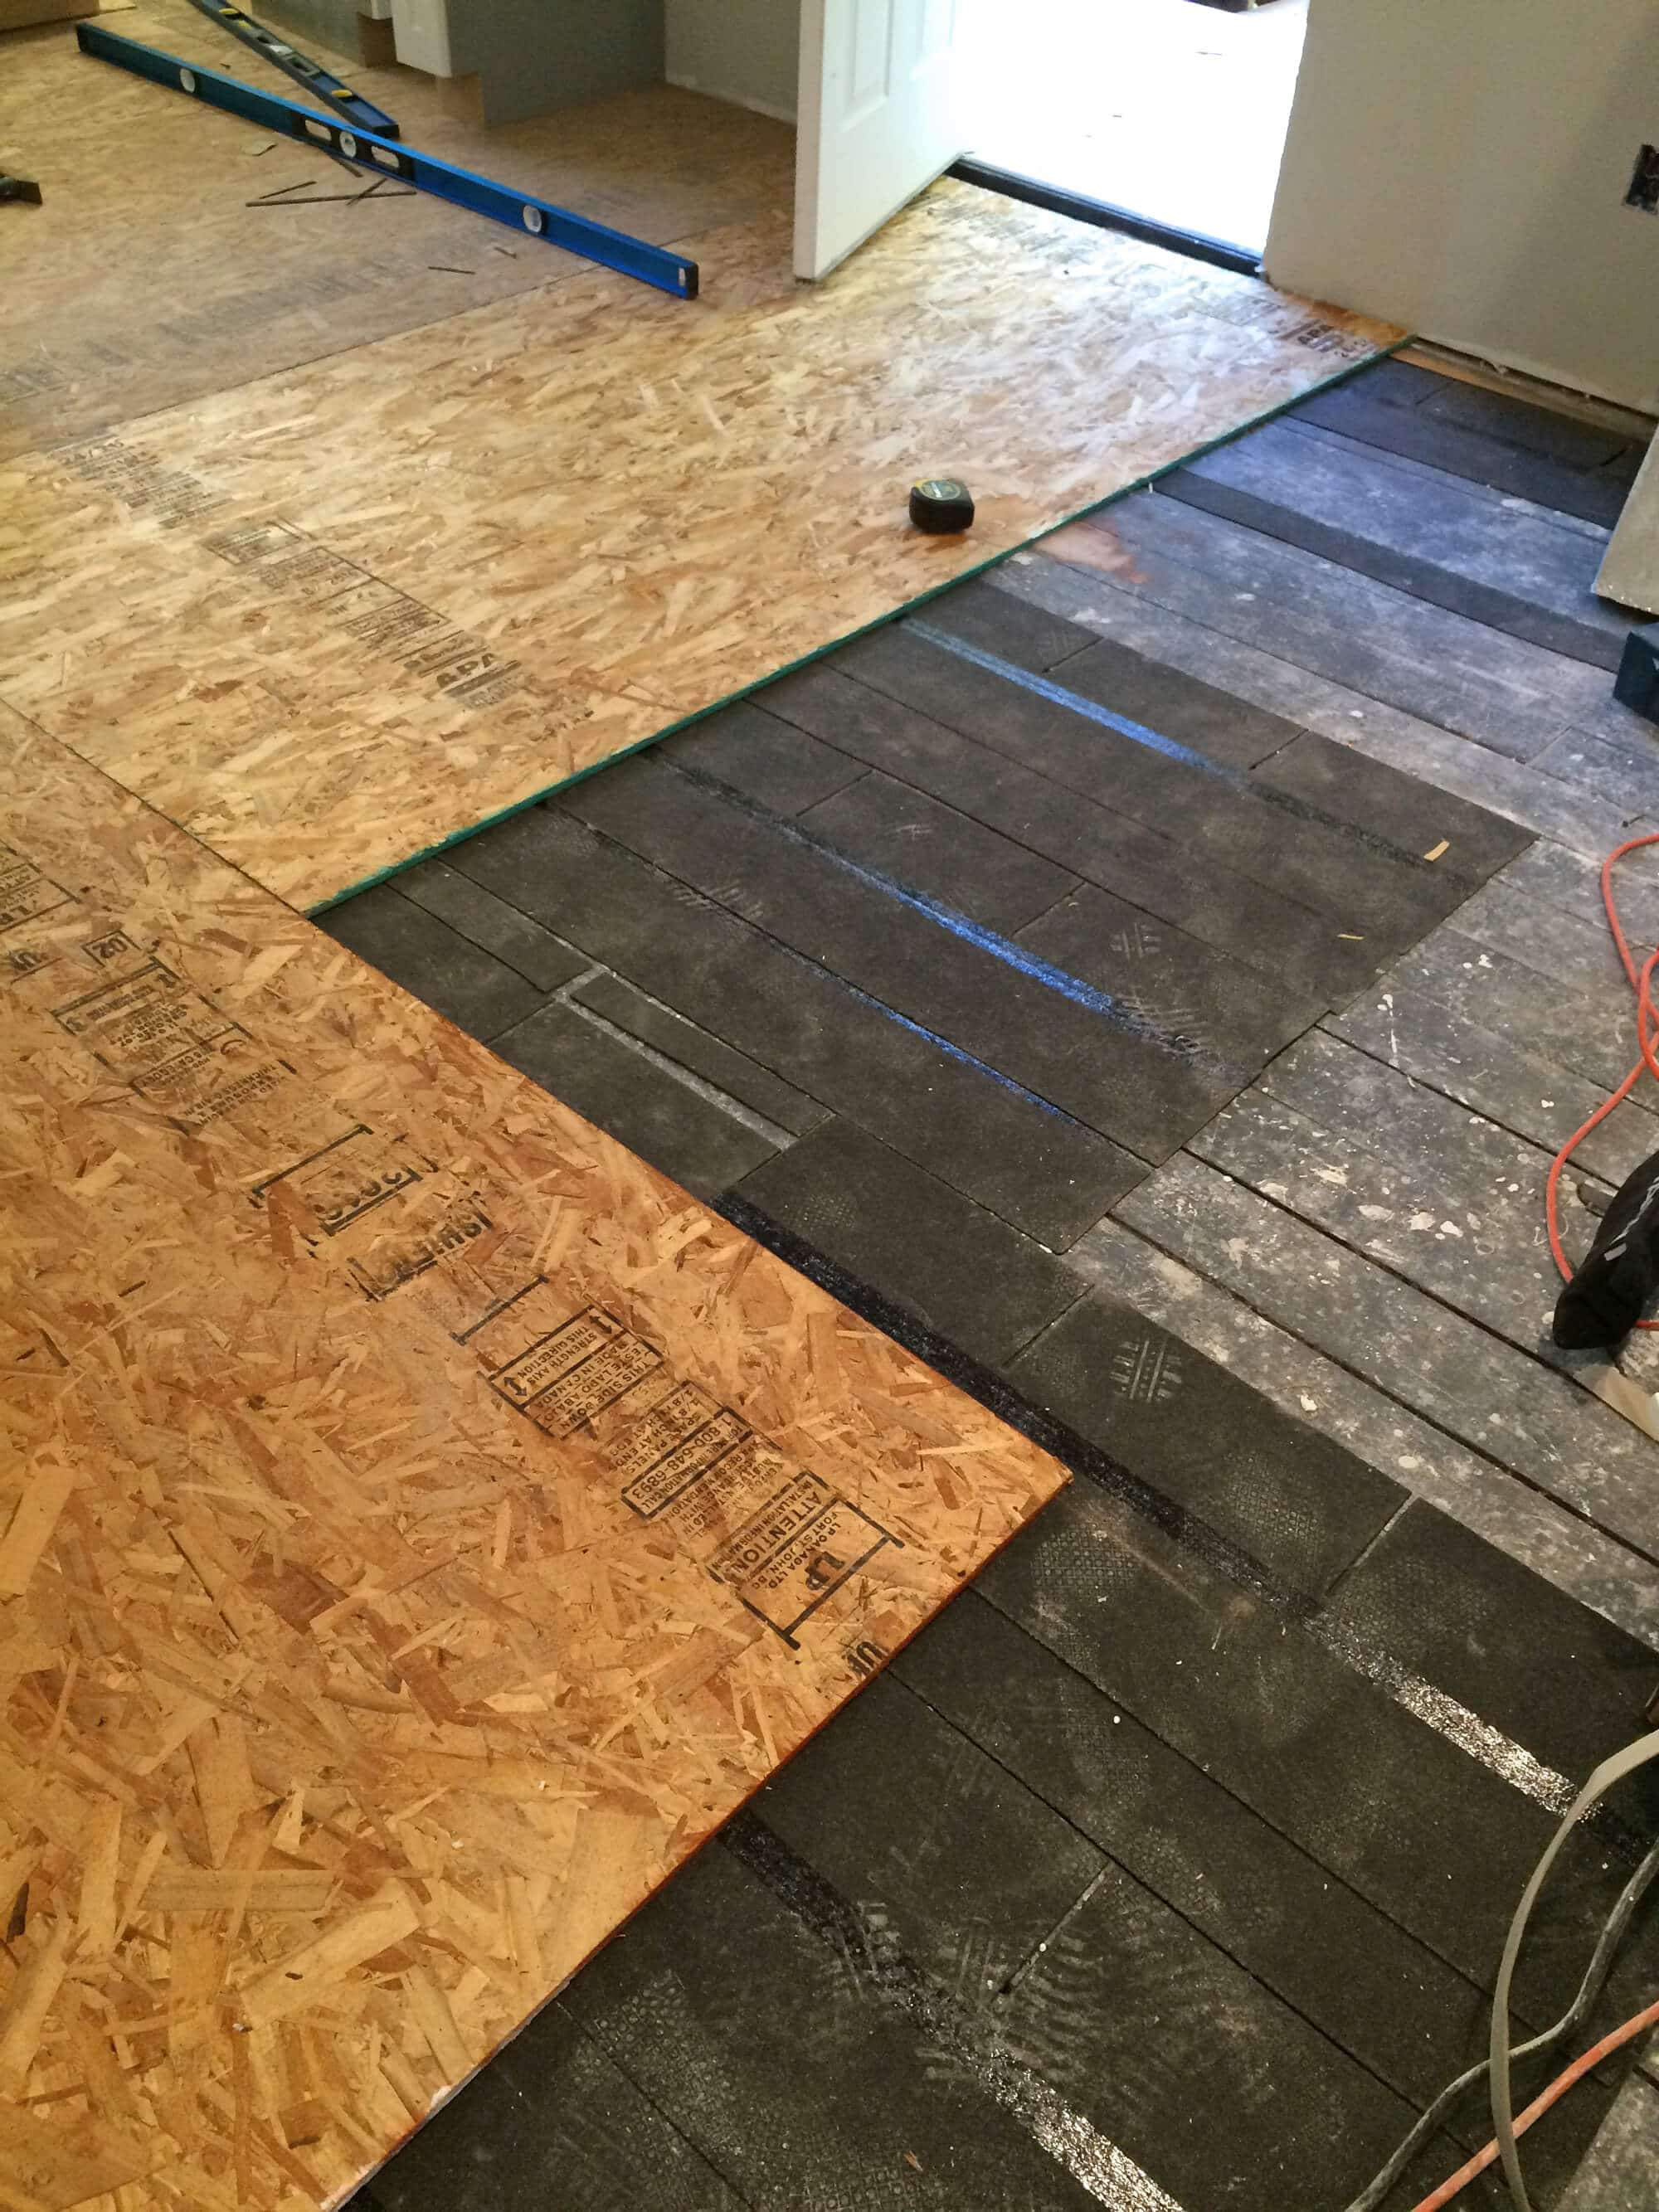 installing floating hardwood floors yourself of the micro dwelling project part 5 flooring the daring gourmet with we secured the sub flooring with construction screws its generally recommended to space the screws every 8 inches in a grid pattern